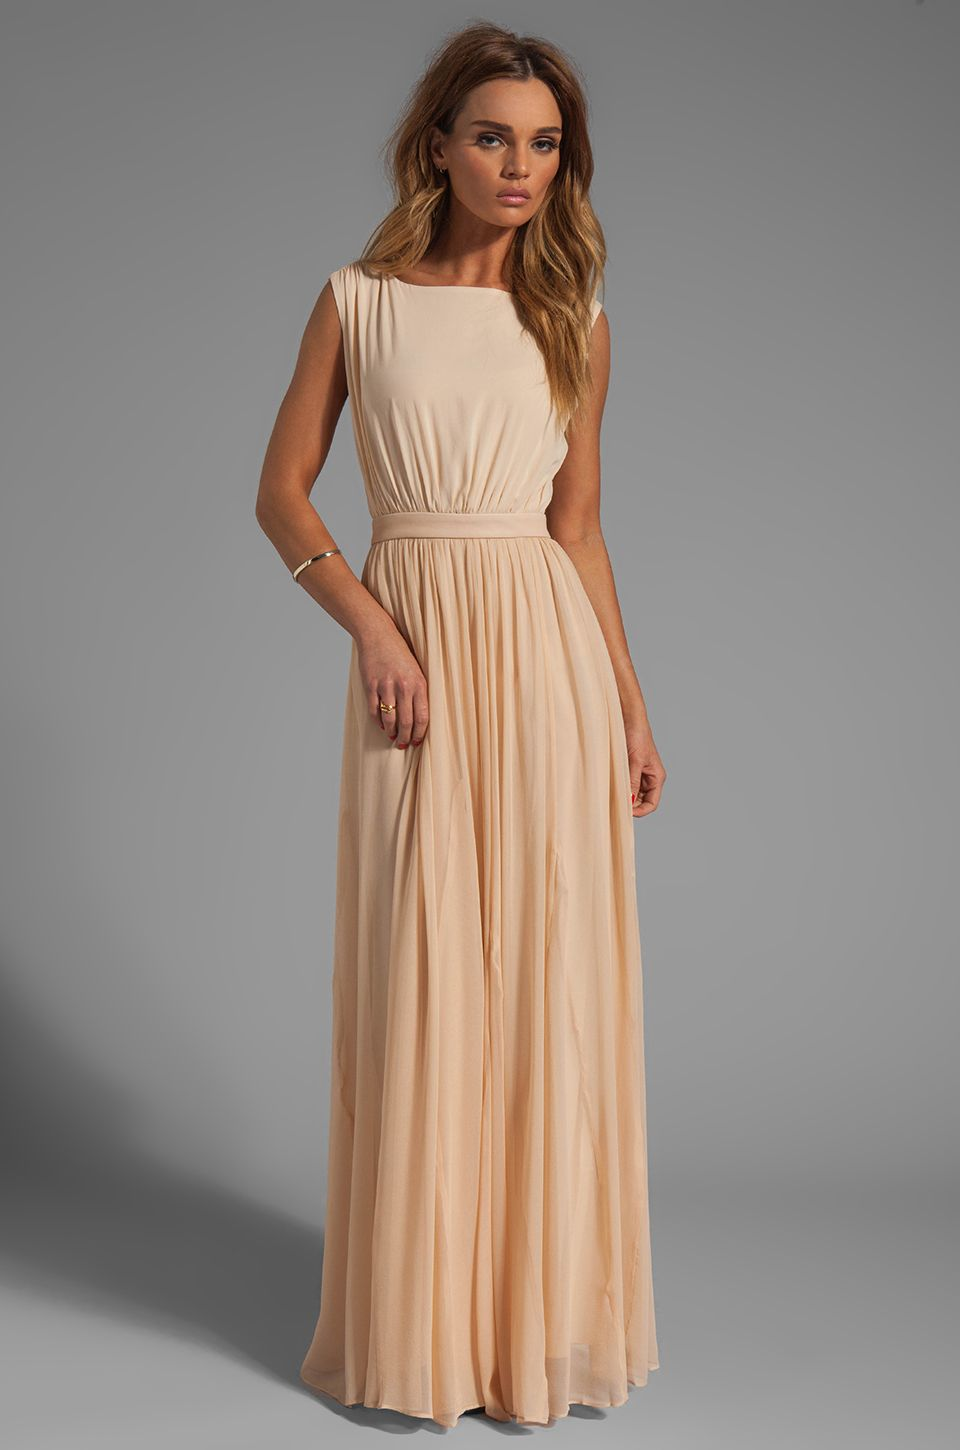 Alice + Olivia Triss Sleeveless Maxi Dress with Leather Trim in ...